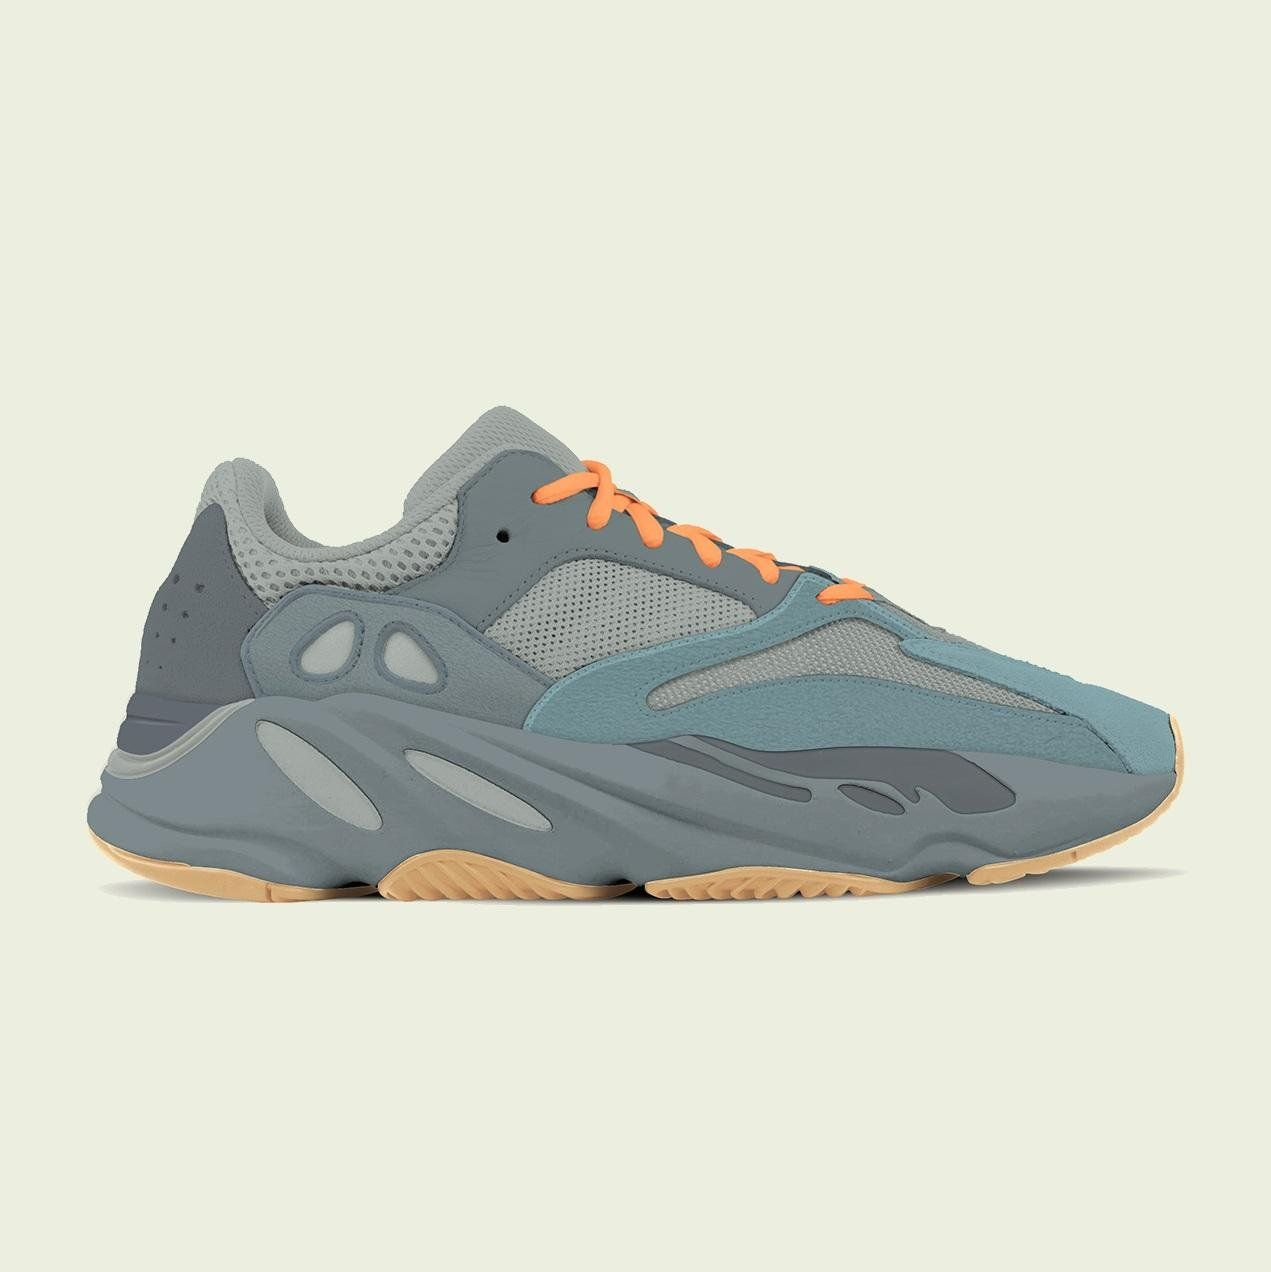 Yeezy 700 v2 by Kanye West adidas Release Info